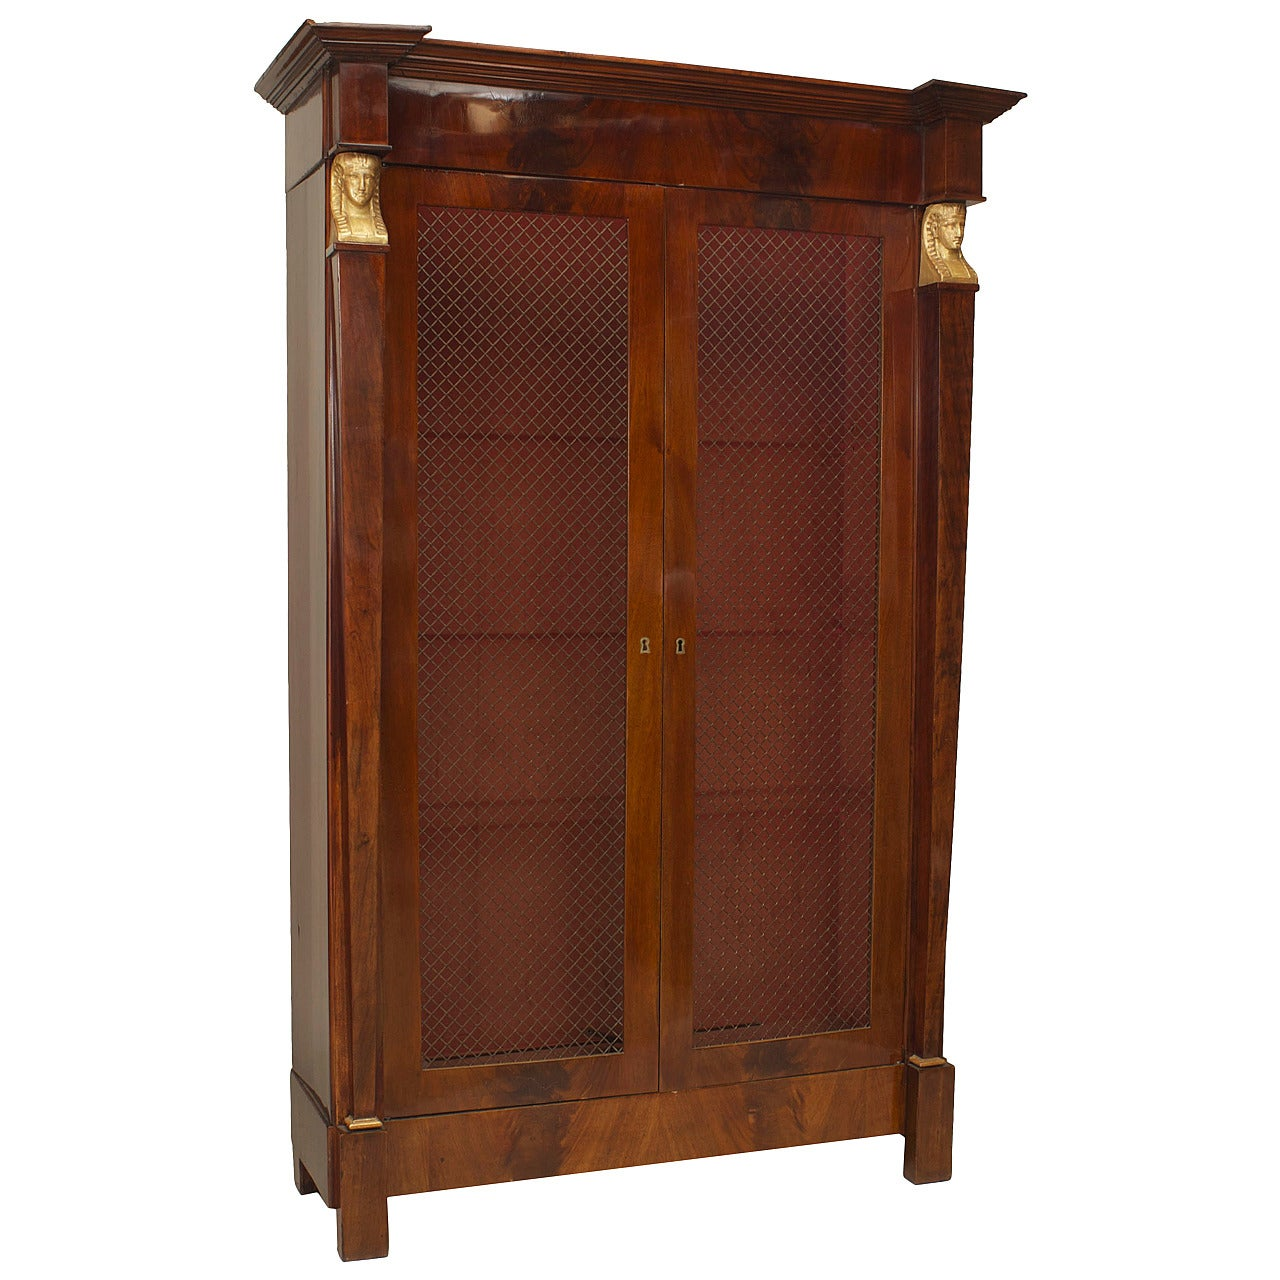 French Empire Mahogany Bibliothéque Cabinet